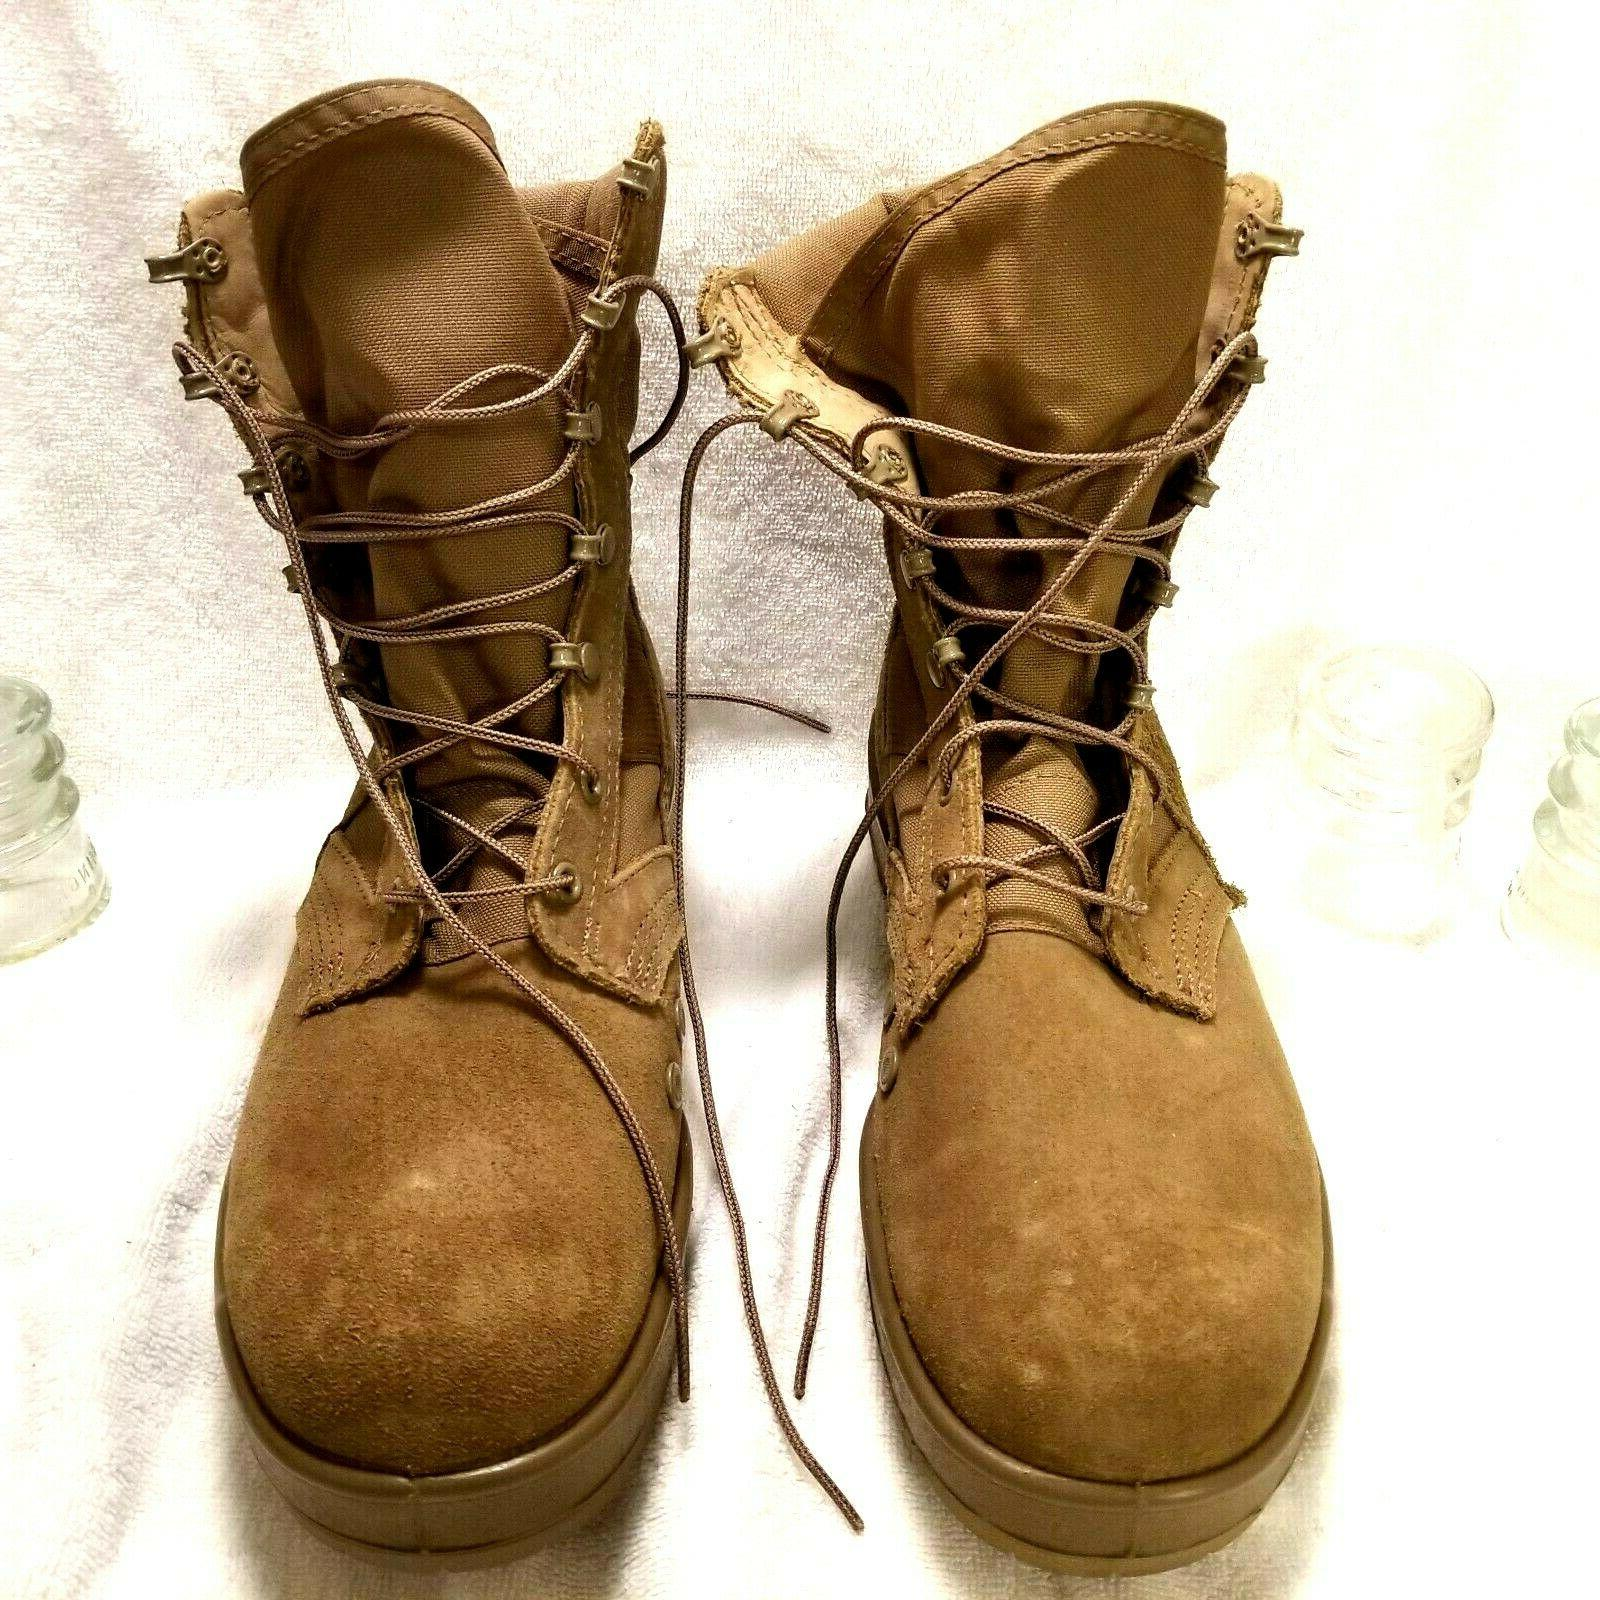 US Military Boots 8.5 W hot weather army Combat